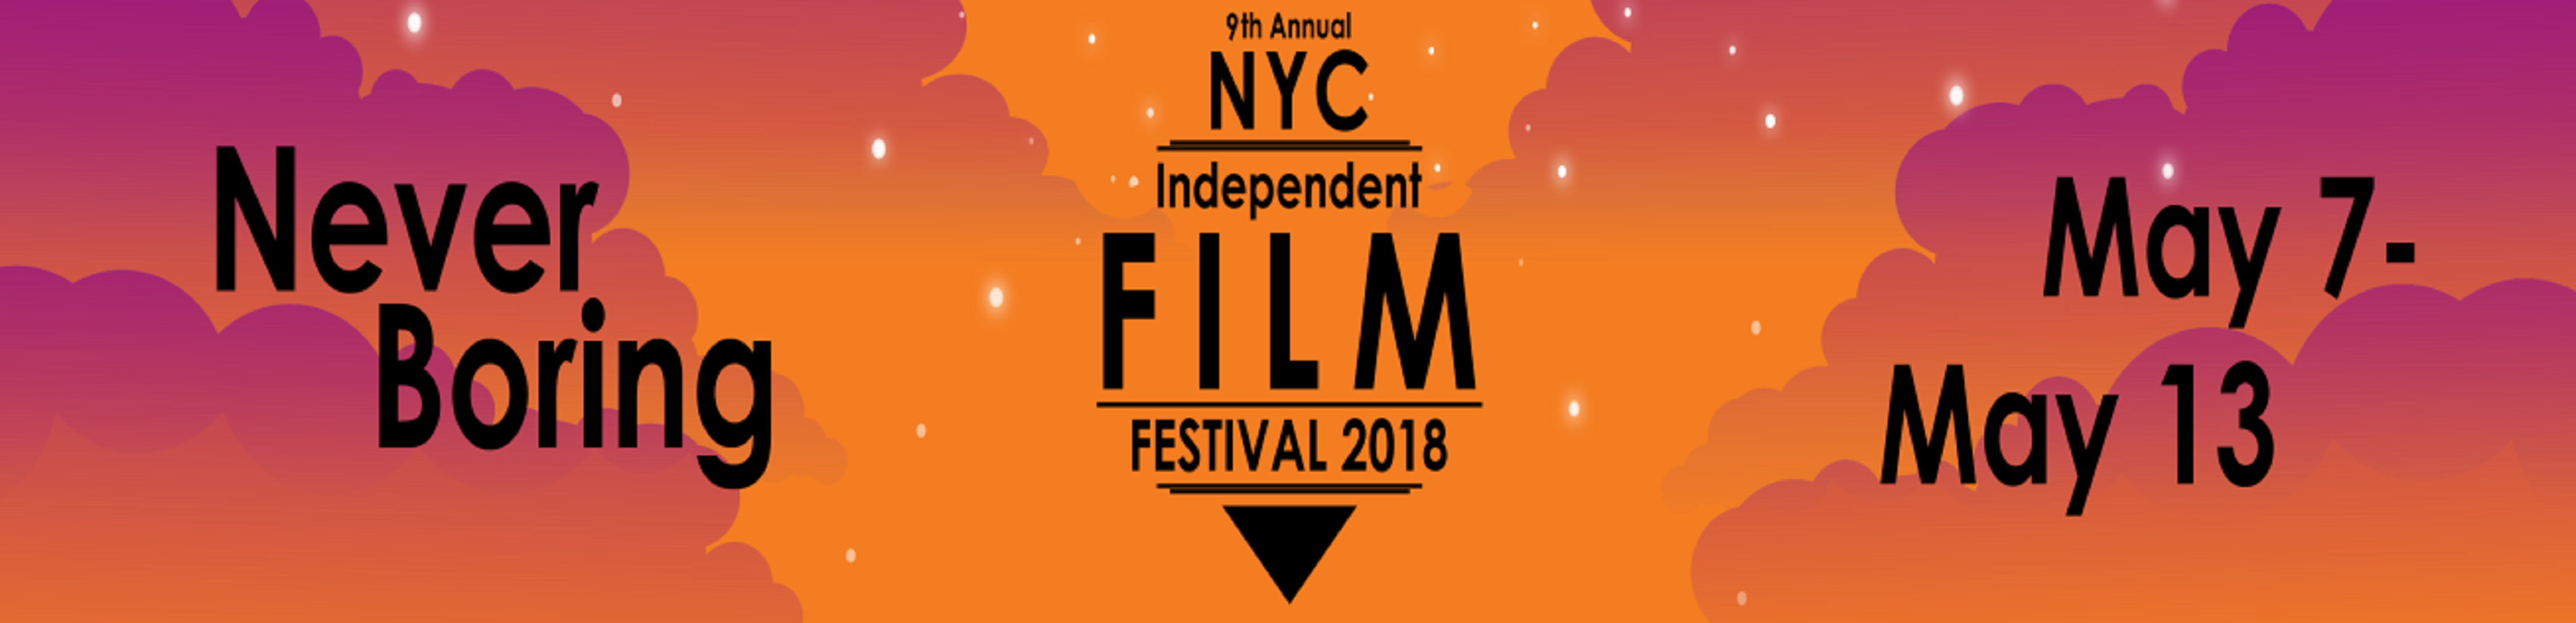 NYC Indie Film Festival 2018 | Review